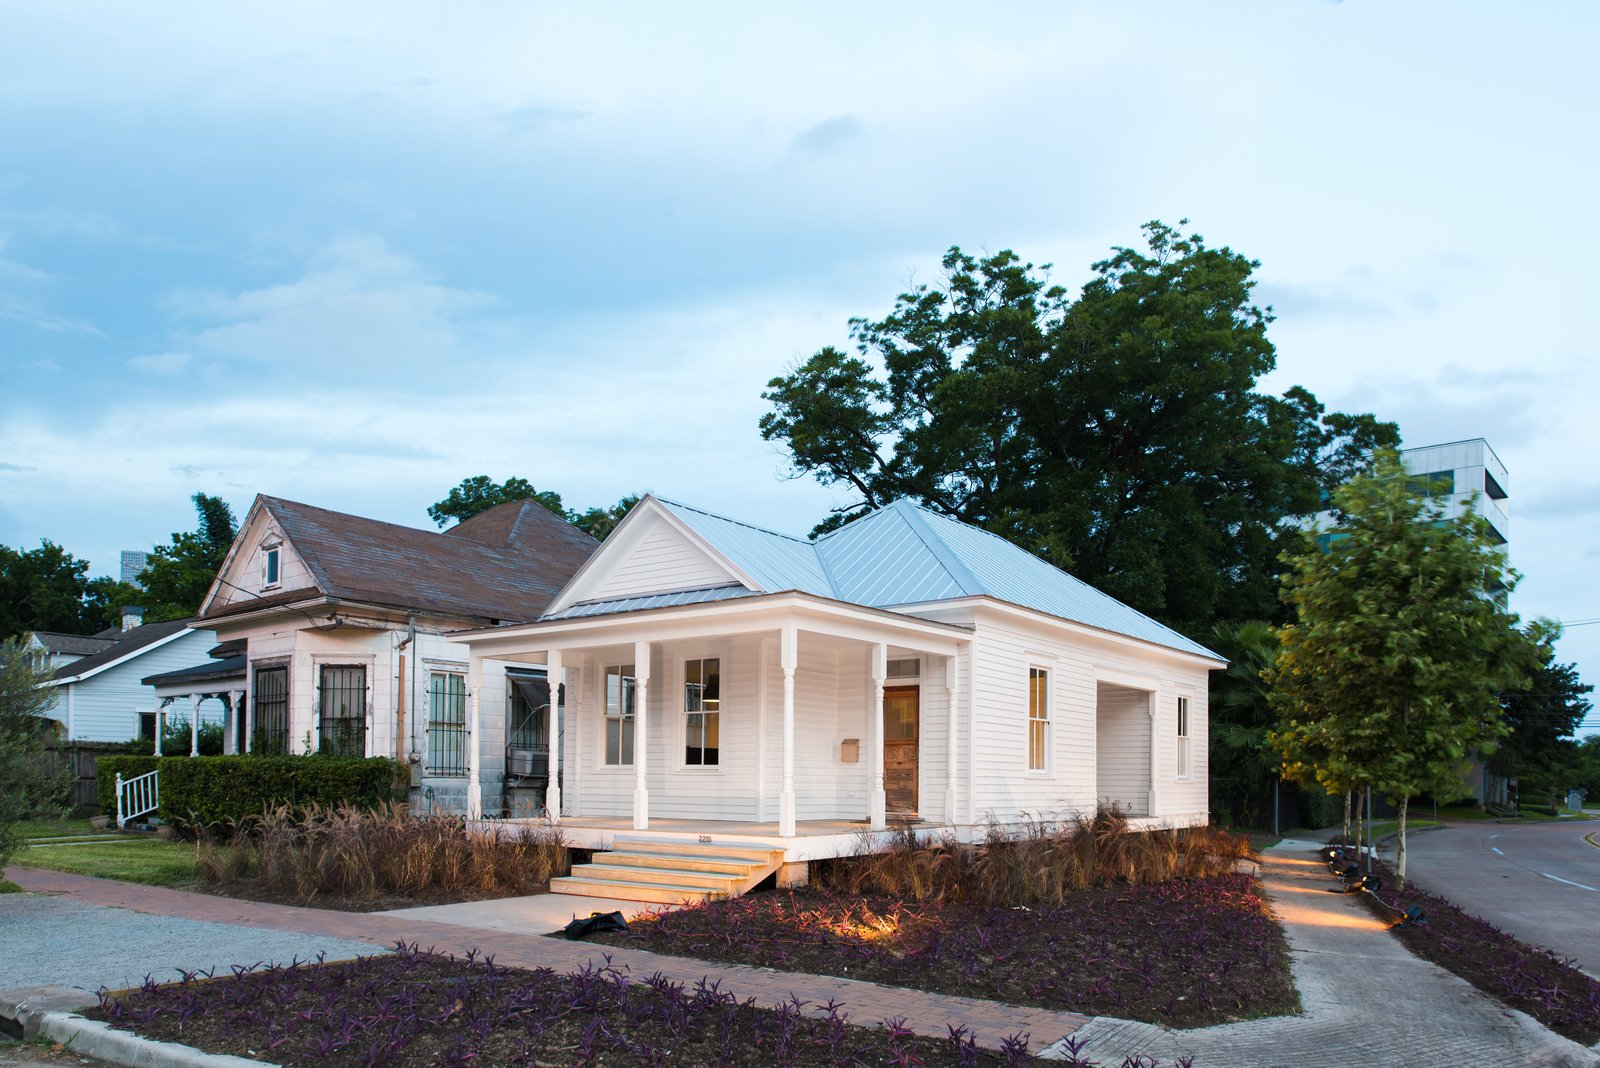 Exterior, Metal Roof Material, House Building Type, Hipped RoofLine, and Wood Siding Material  Photo 1 of 14 in A Victorian Cottage in Houston Finds New Life as a Local Firm's Office